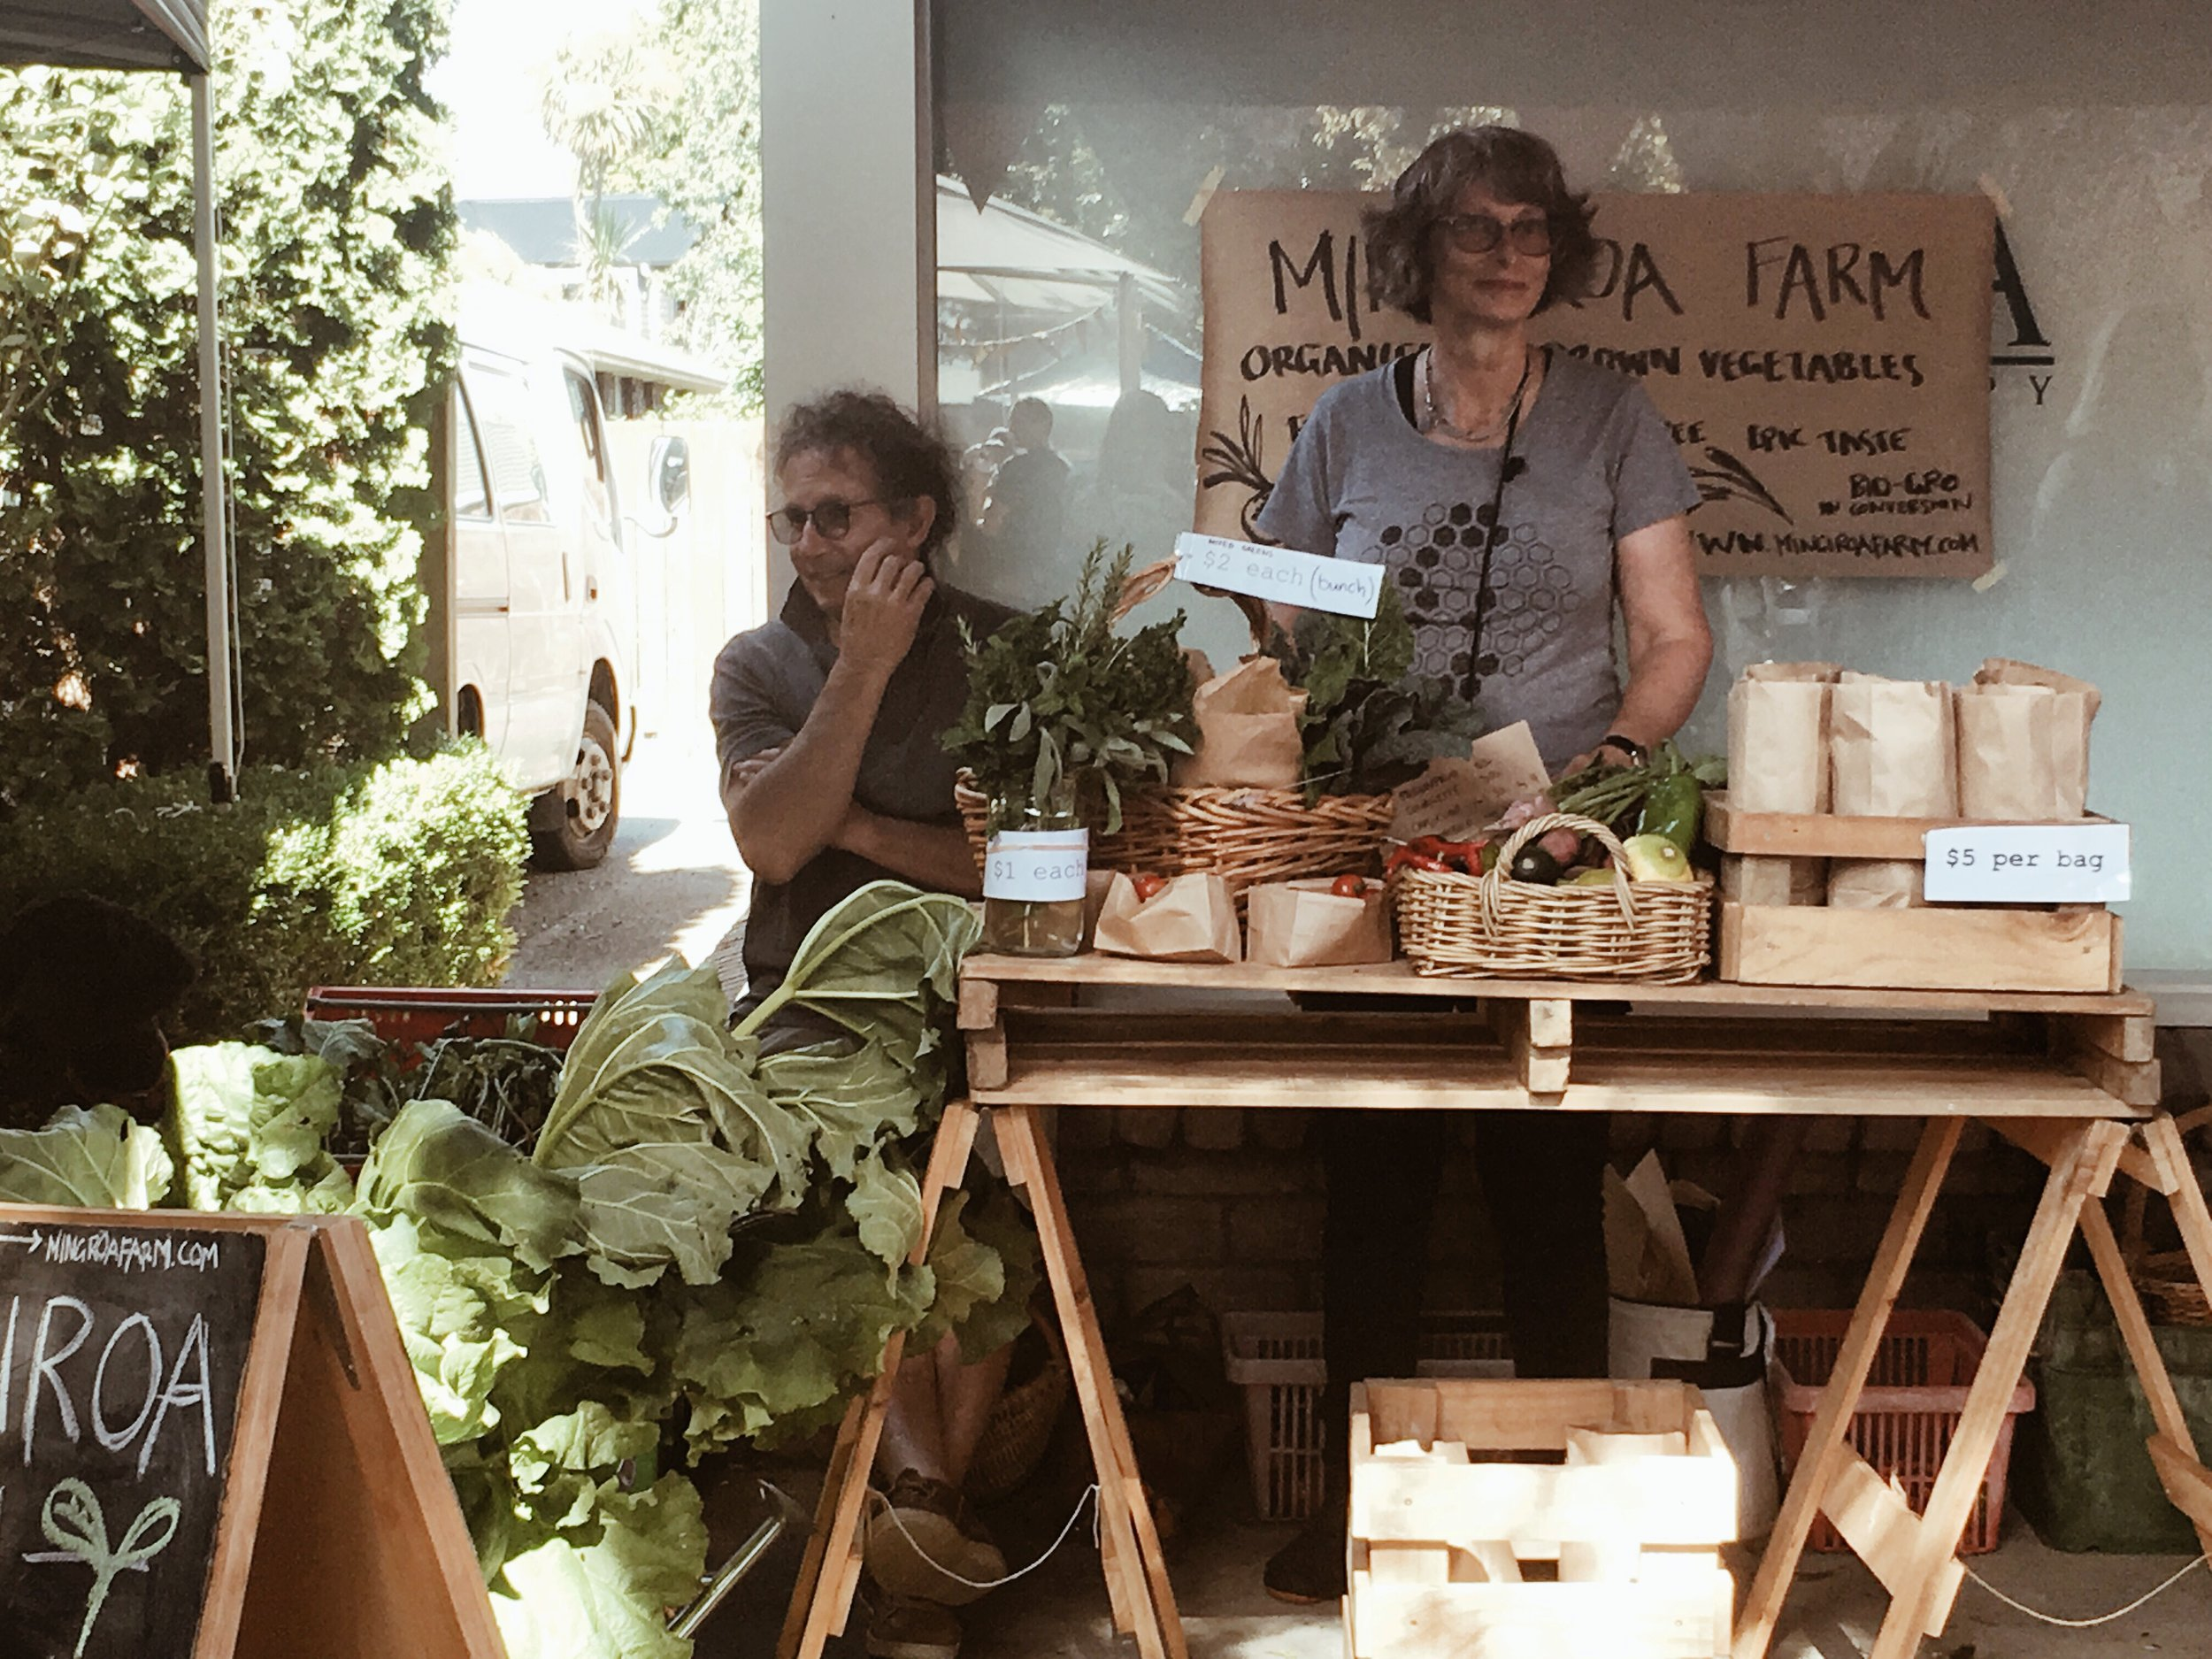 Sal and Richo with a table full of freshies at one of our favourite markets - Hokowhitu Farmers Market, Palmerston North.